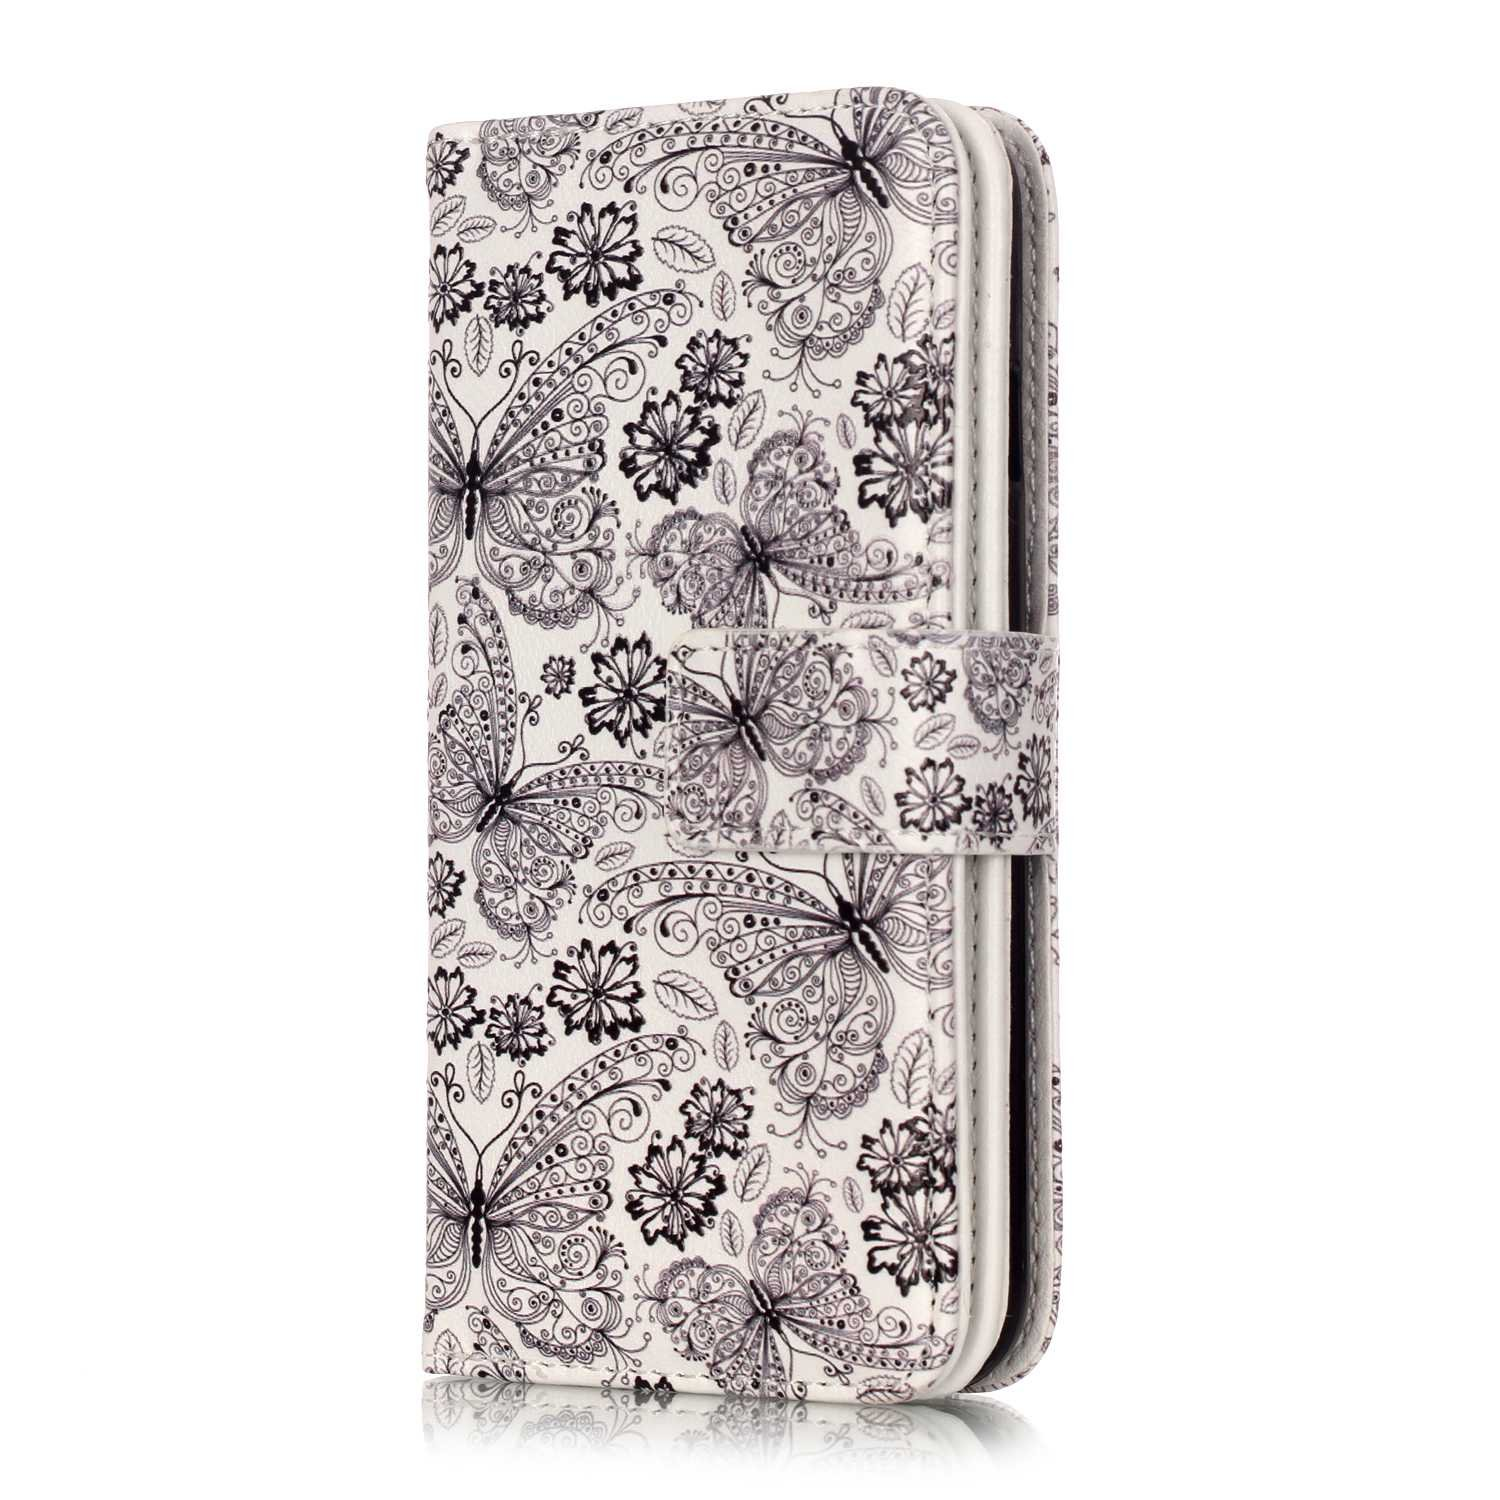 JuSha for Apply to Apple iPhone 7 / iPhone 8 Edge Case PU Leather Wallet Magnetic Cover Skin(Butterfly pattern mobile phone case) hot sale